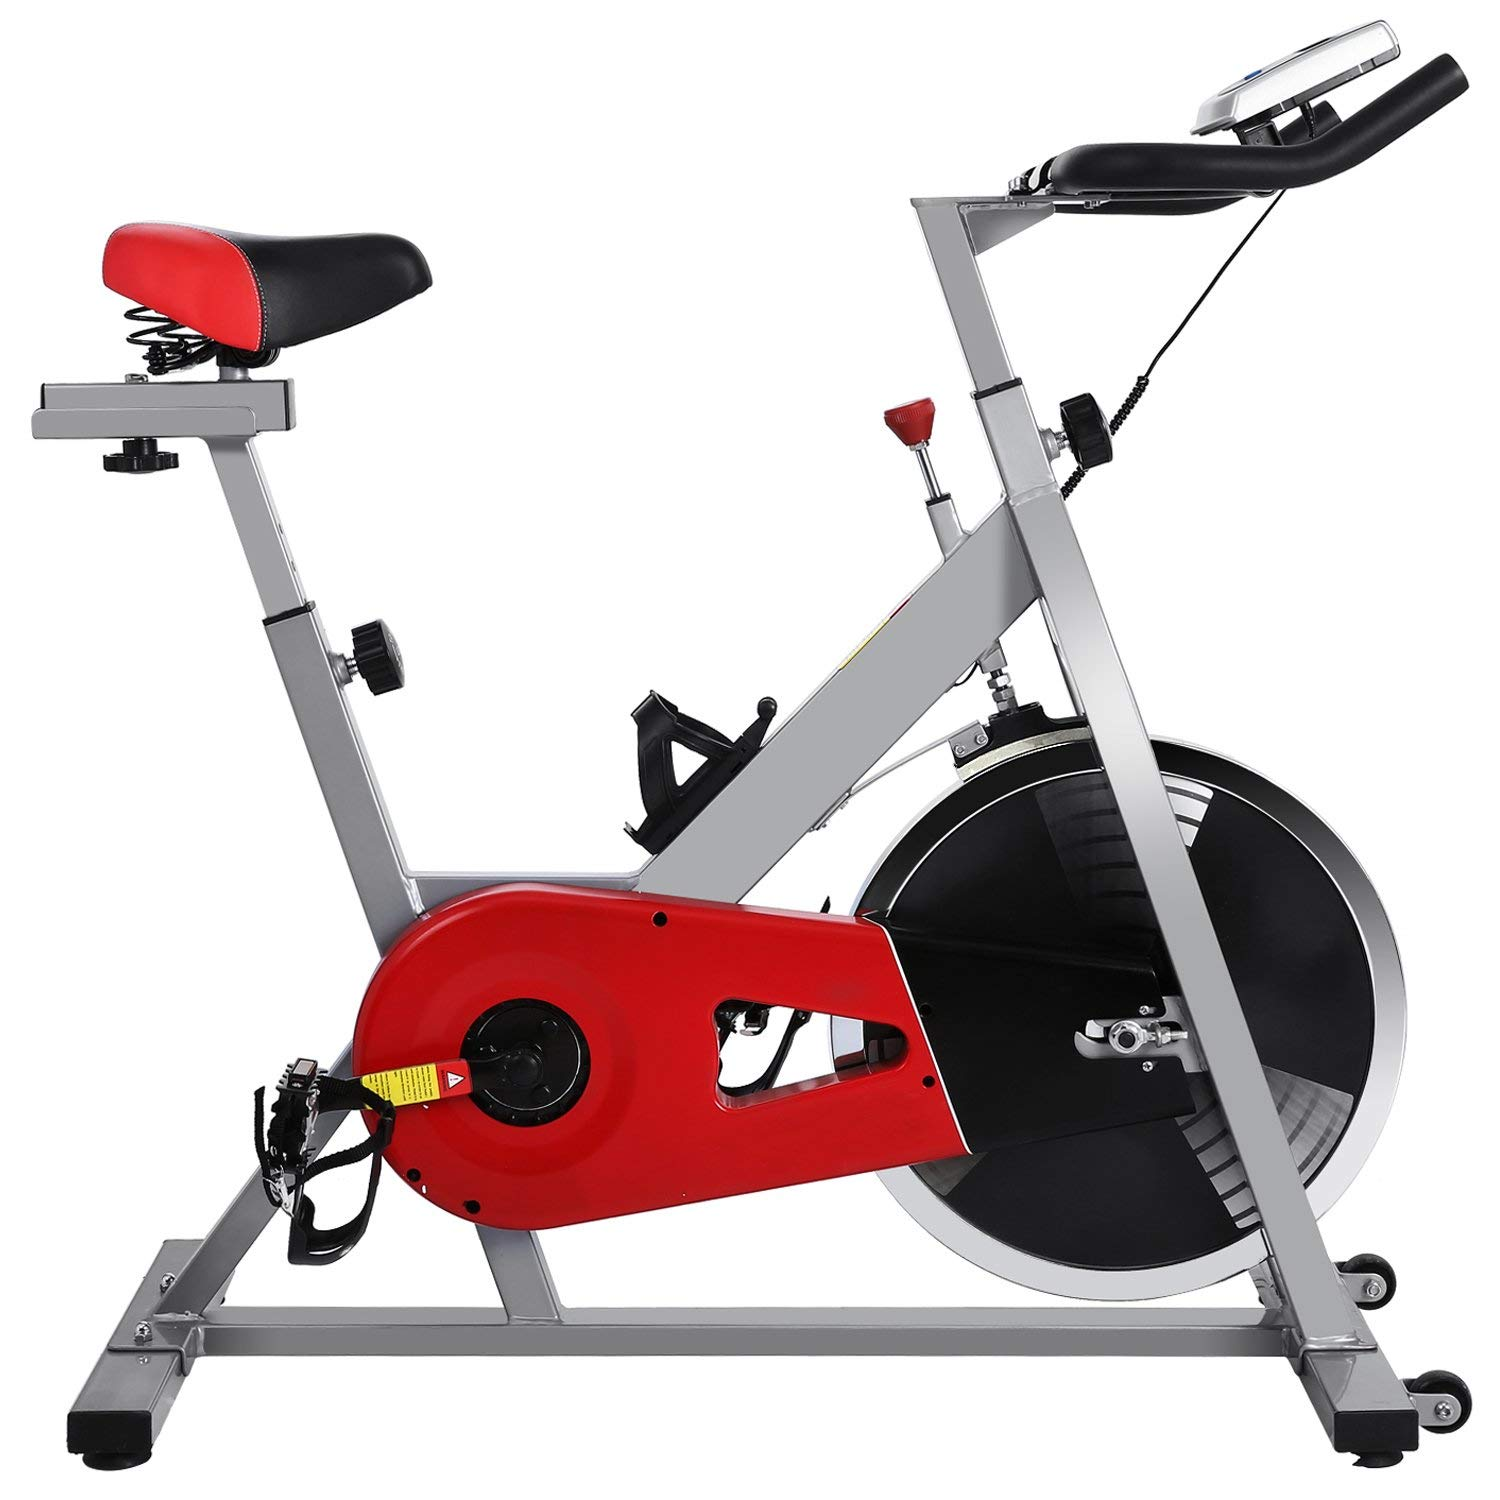 Ferty Indoor Cycling Bike Exercise Machine with Screen, Heavy Duty Gym Upright Fitness Belt Resistance Exercise Bike (US STOCK) by Ferty